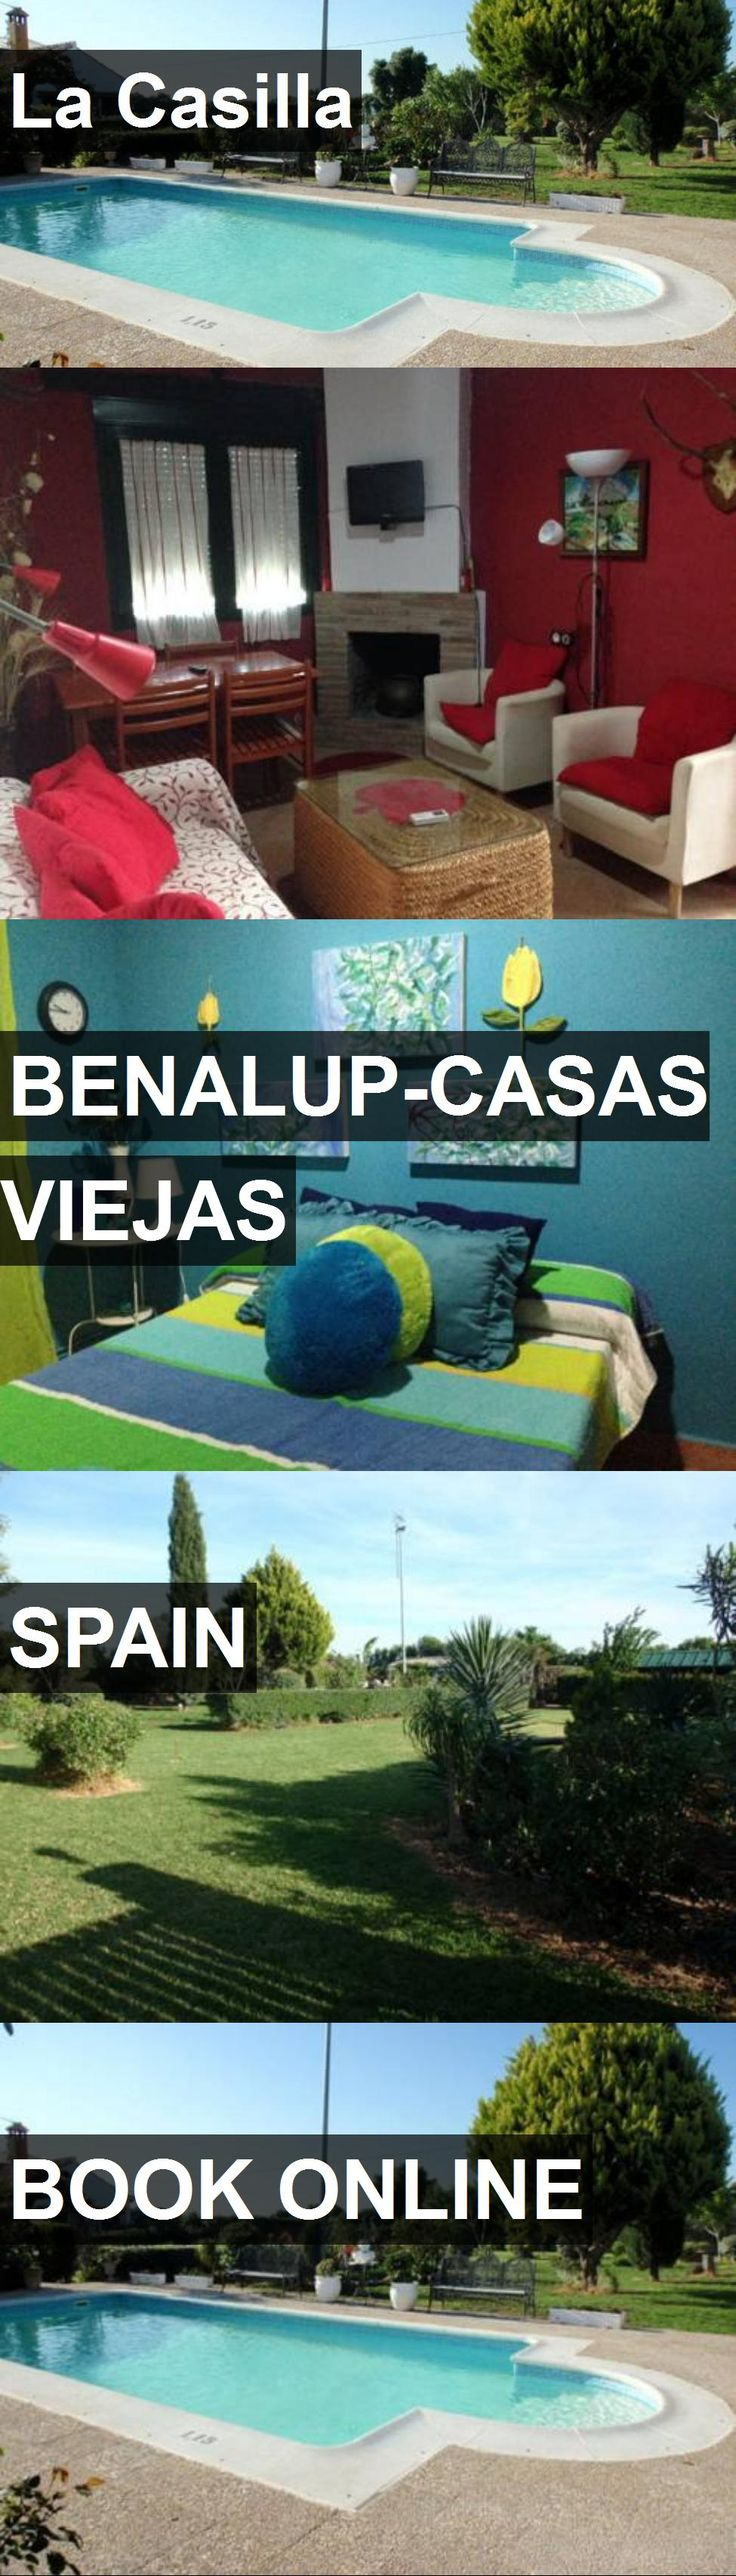 Hotel La Casilla in Benalup-Casas Viejas, Spain. For more information, photos, reviews and best prices please follow the link. #Spain #Benalup-CasasViejas #travel #vacation #hotel